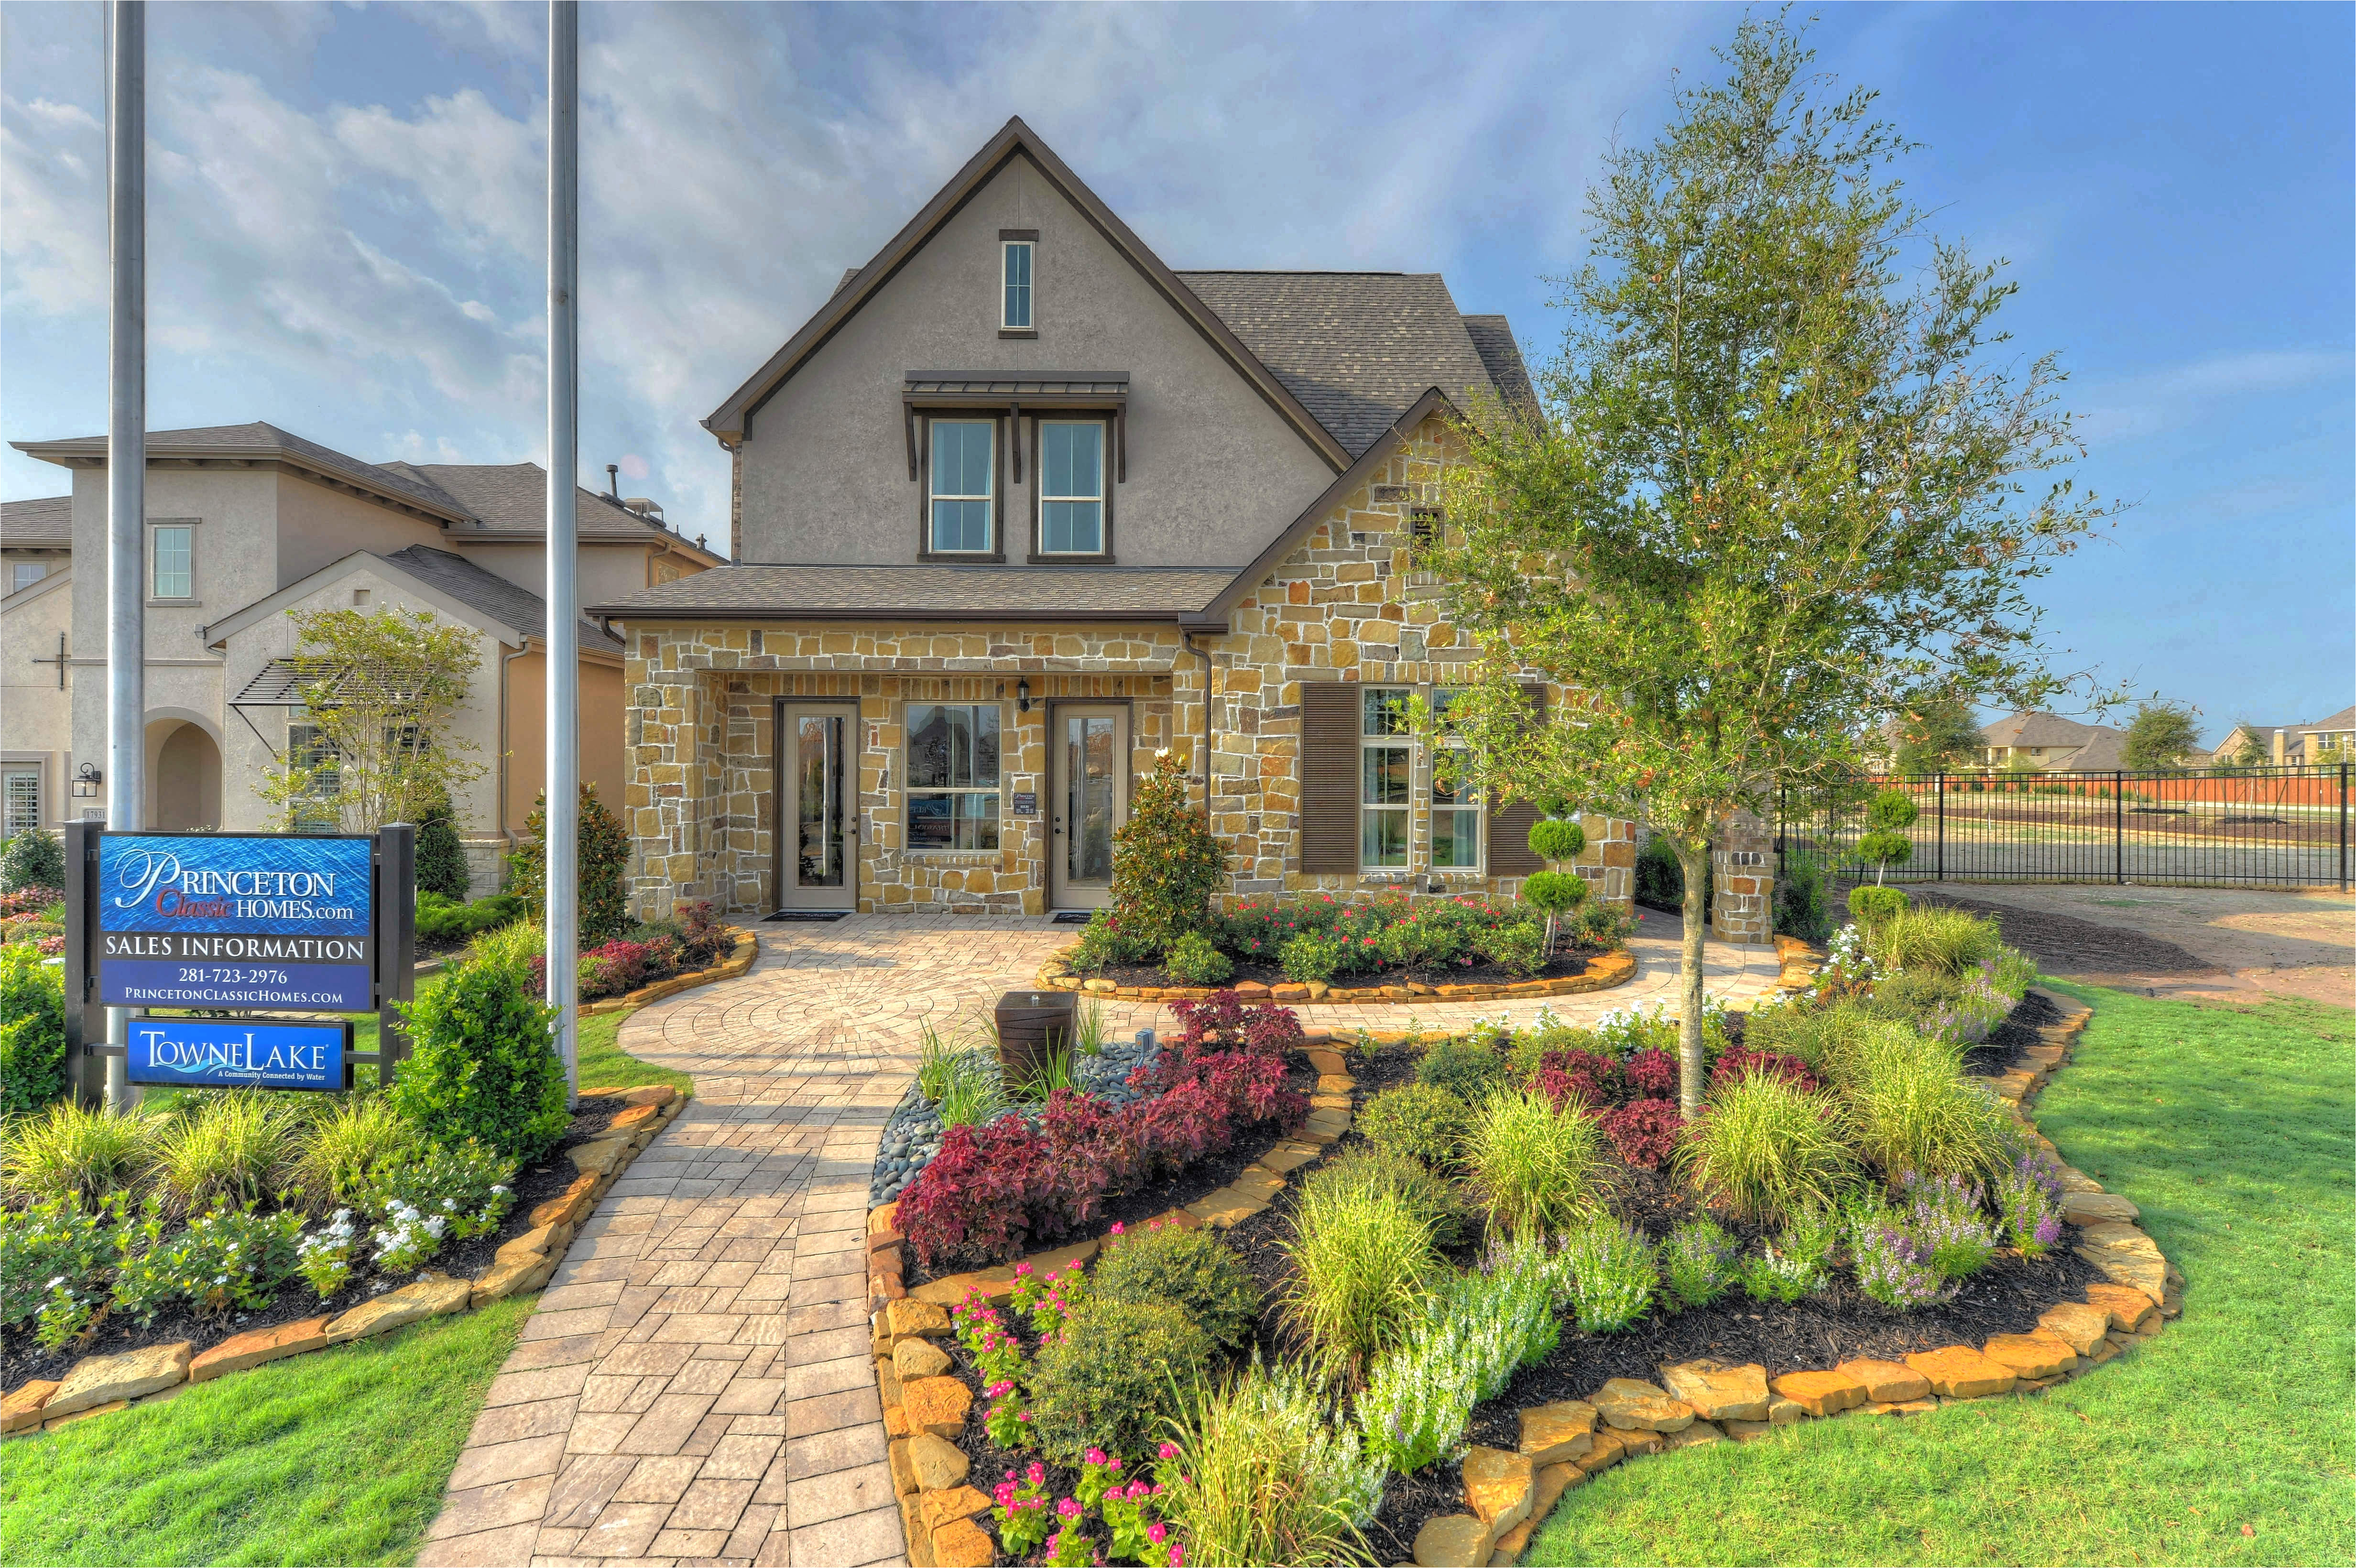 Homes for Sale Near toledo Bend Lilac Bend In Katy Tx New Homes Floor Plans by Princeton Classic